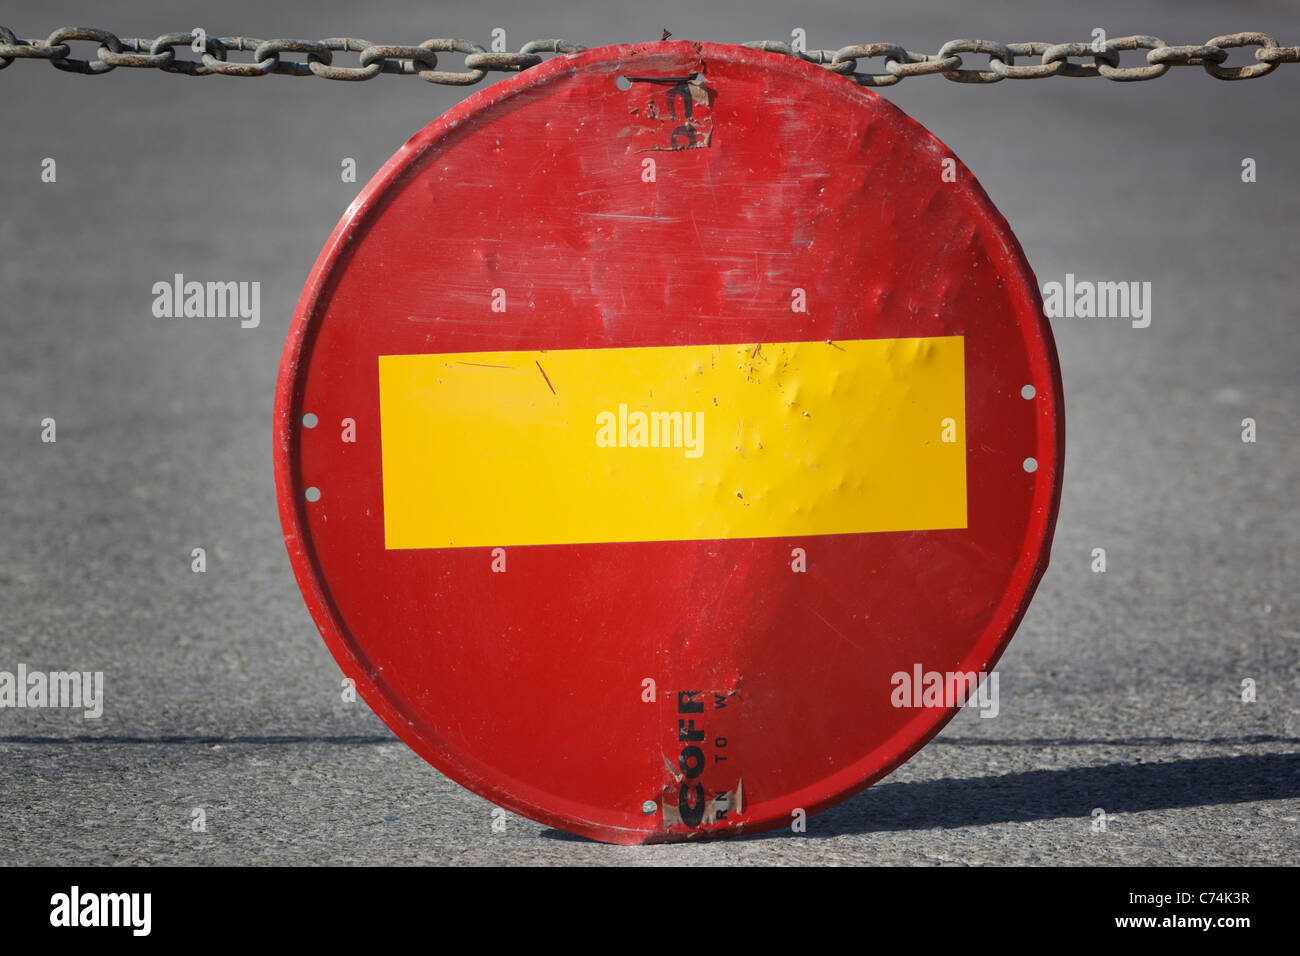 No Entry traffic sign hanging from chain - Stock Image